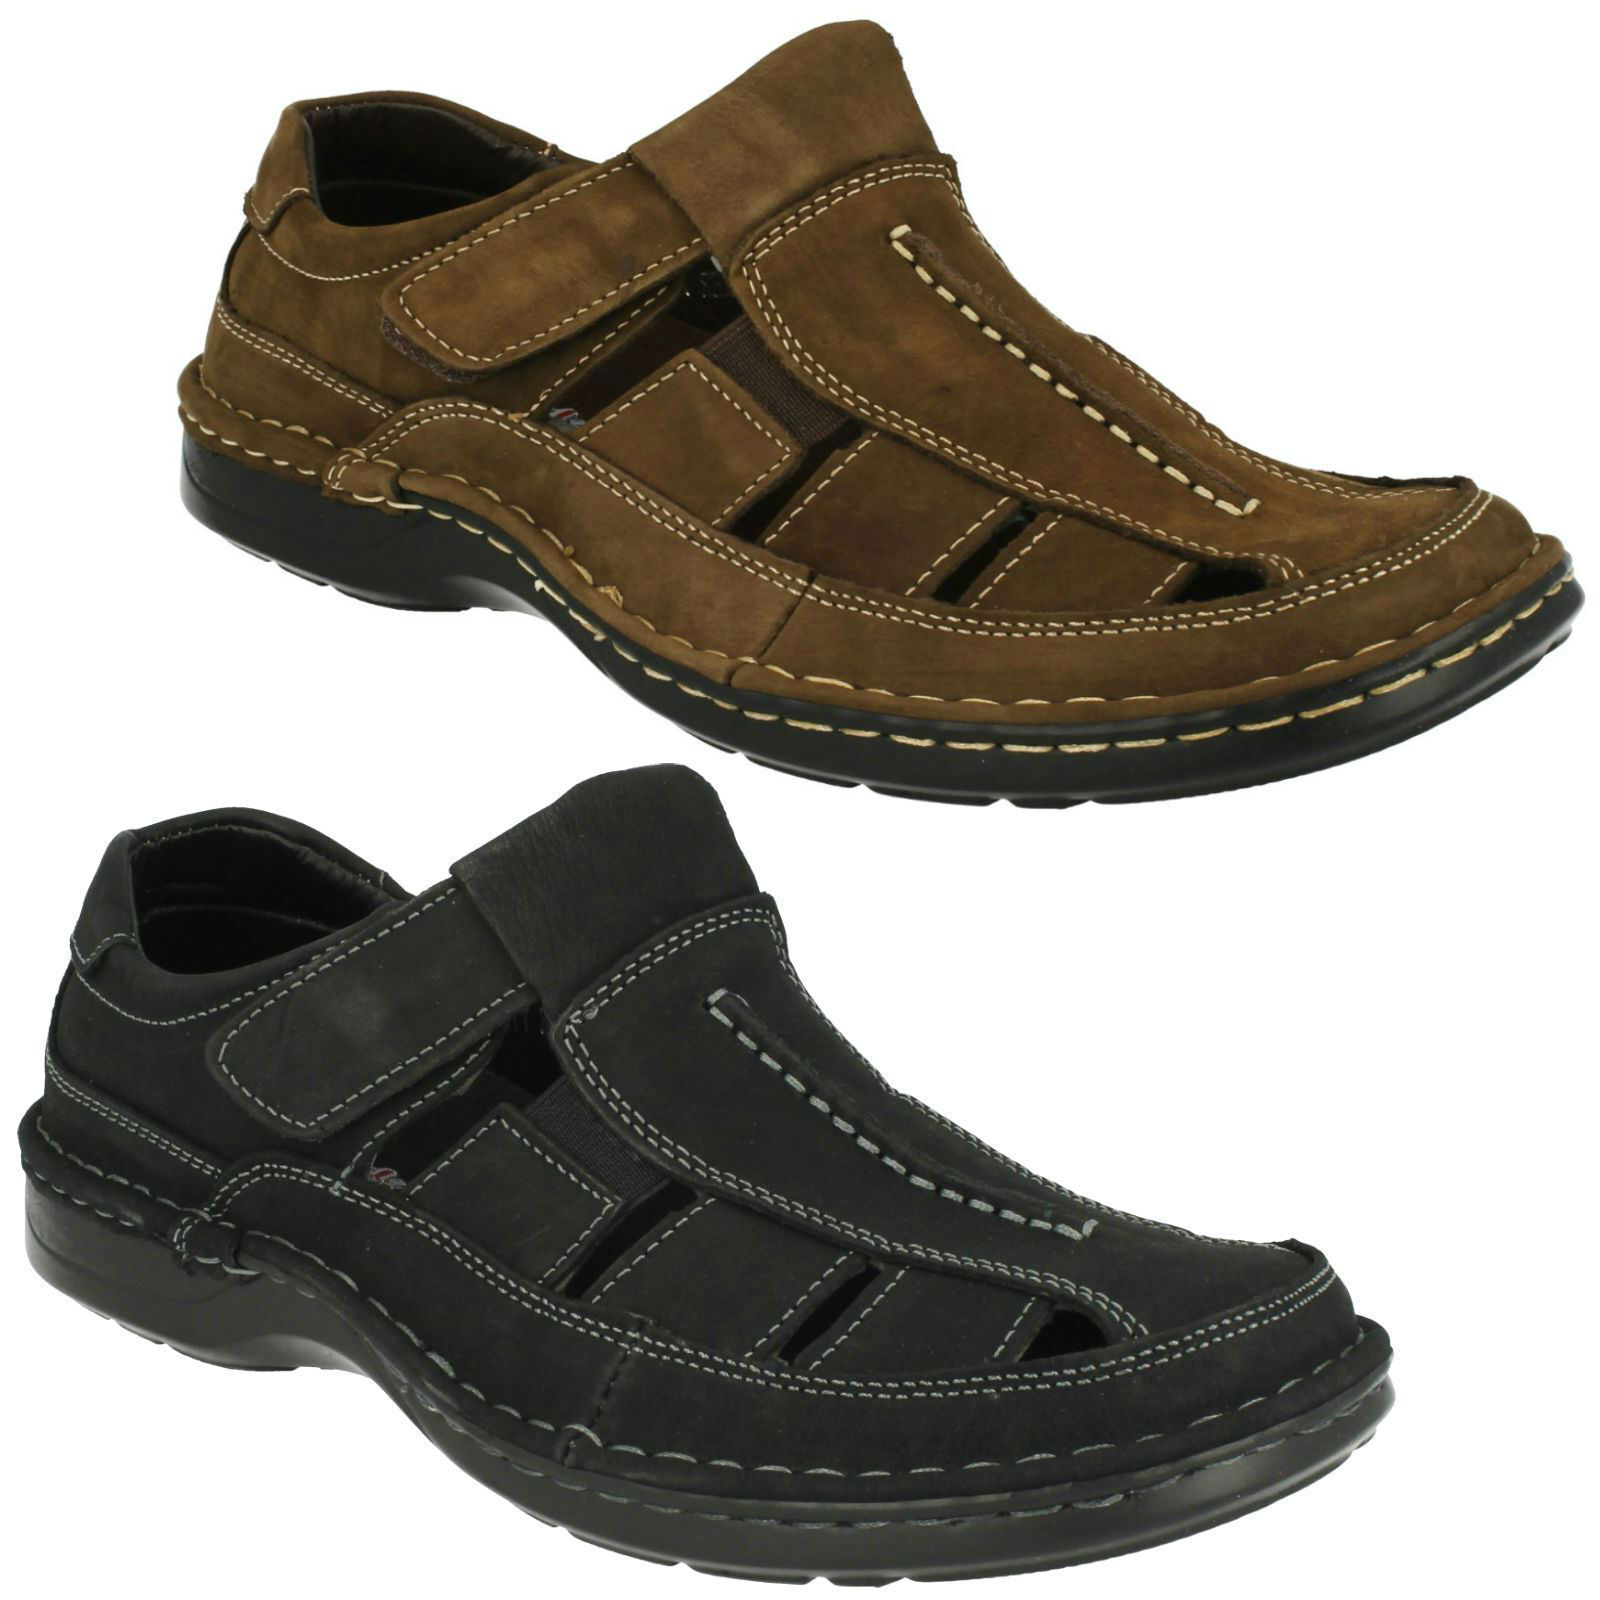 Padders Breaker Mens Leather Sandals Dark Brown and Black